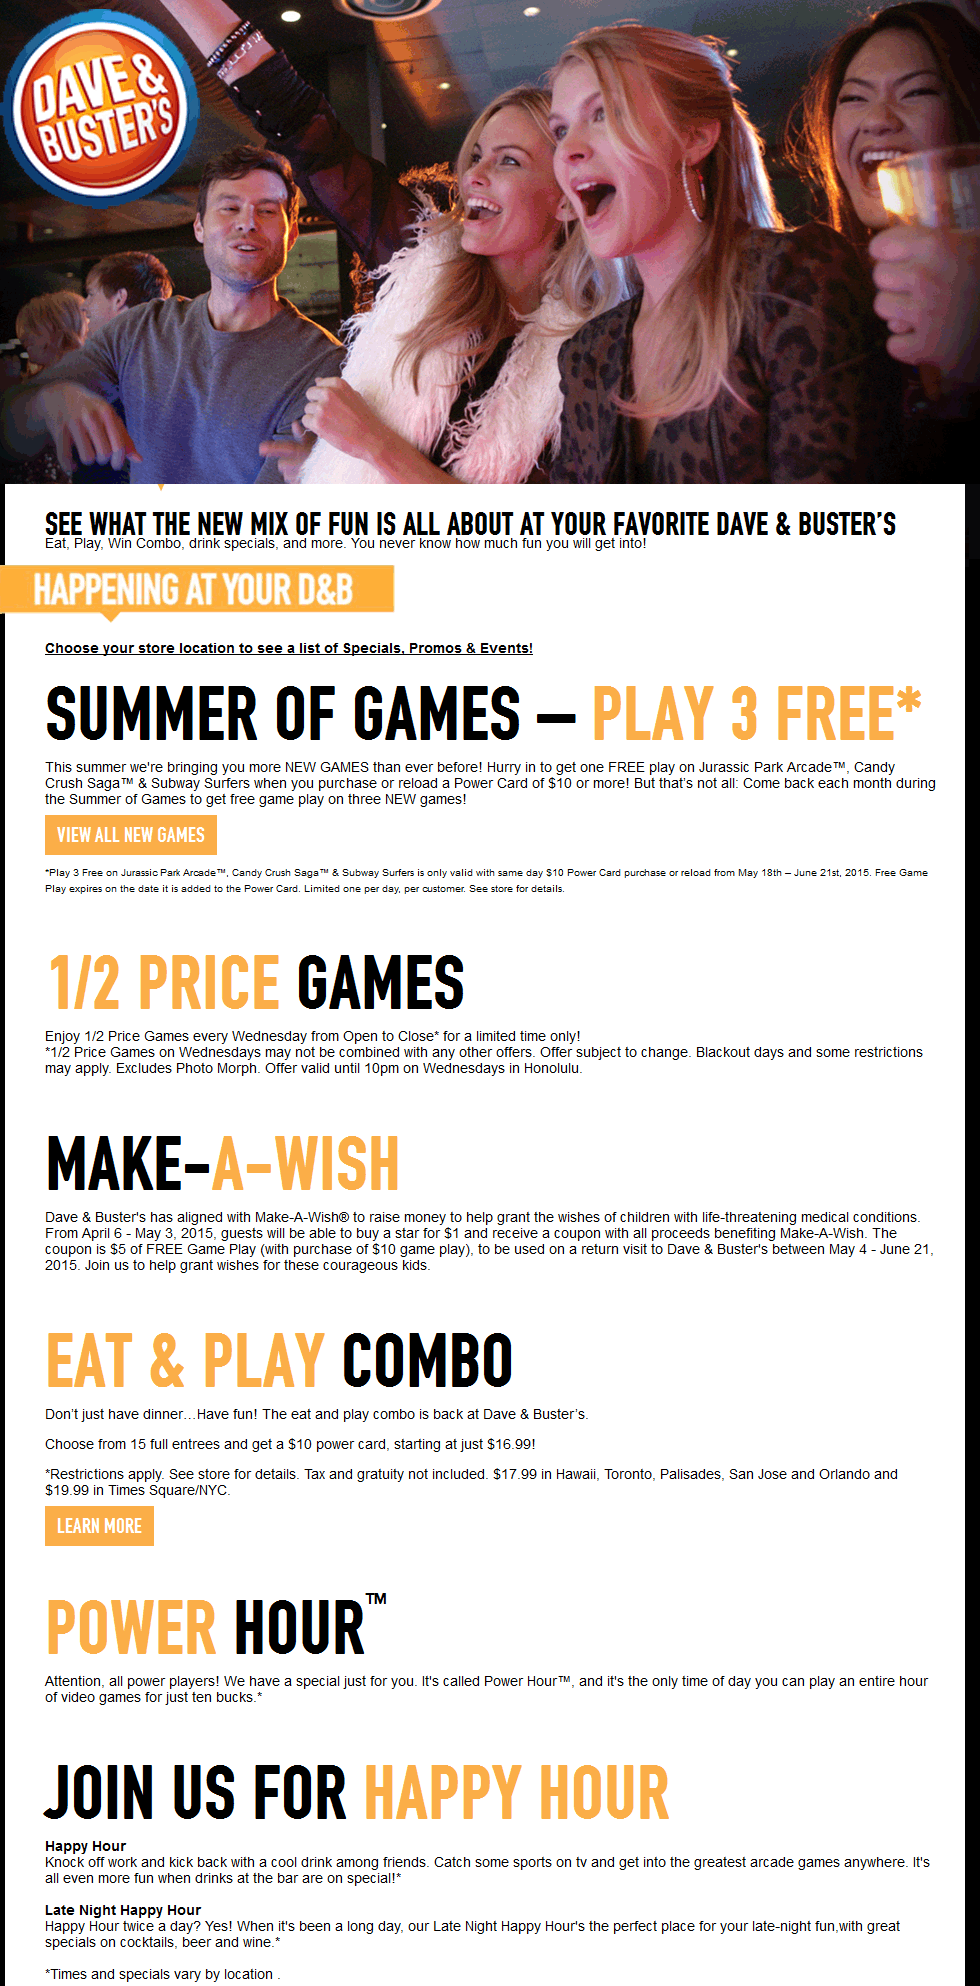 Dave & Busters Coupon April 2017 3 free games with your power card & more at Dave & Busters restaurants